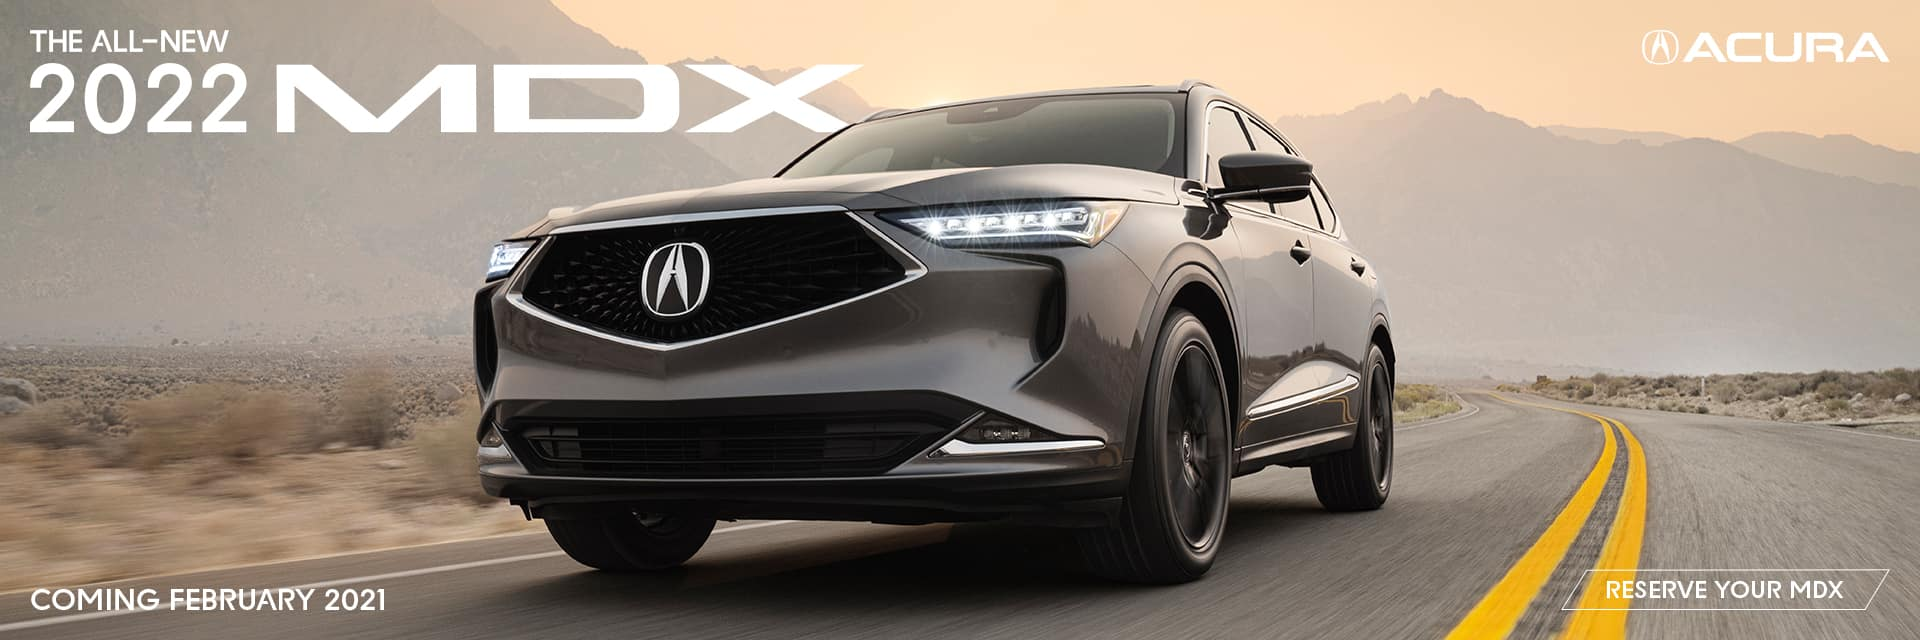 reserve your 2022 MDX